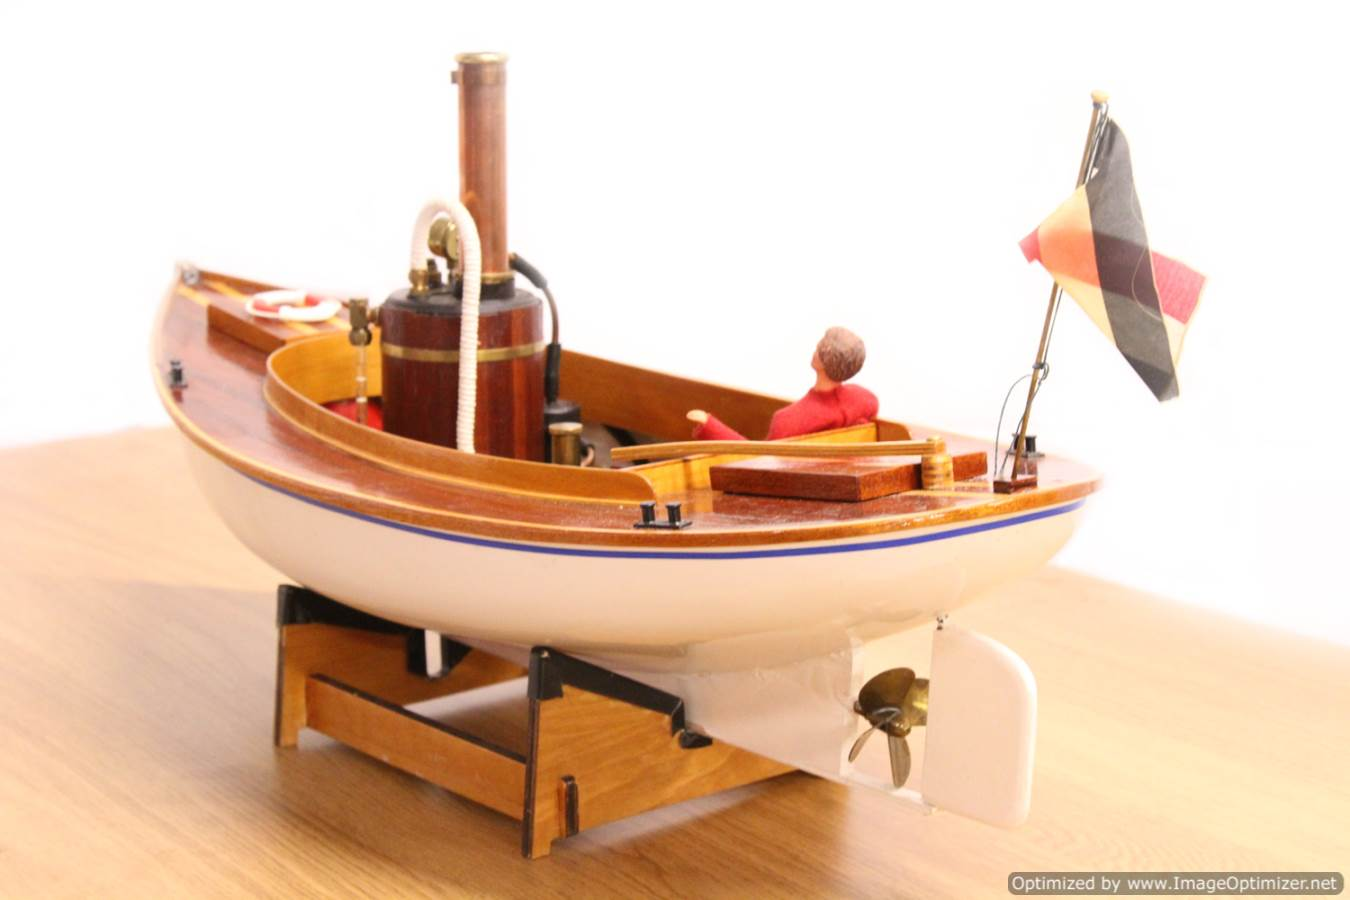 test anna-cheddar-steam-boat-live-steam-model-for-sale-09-optimized